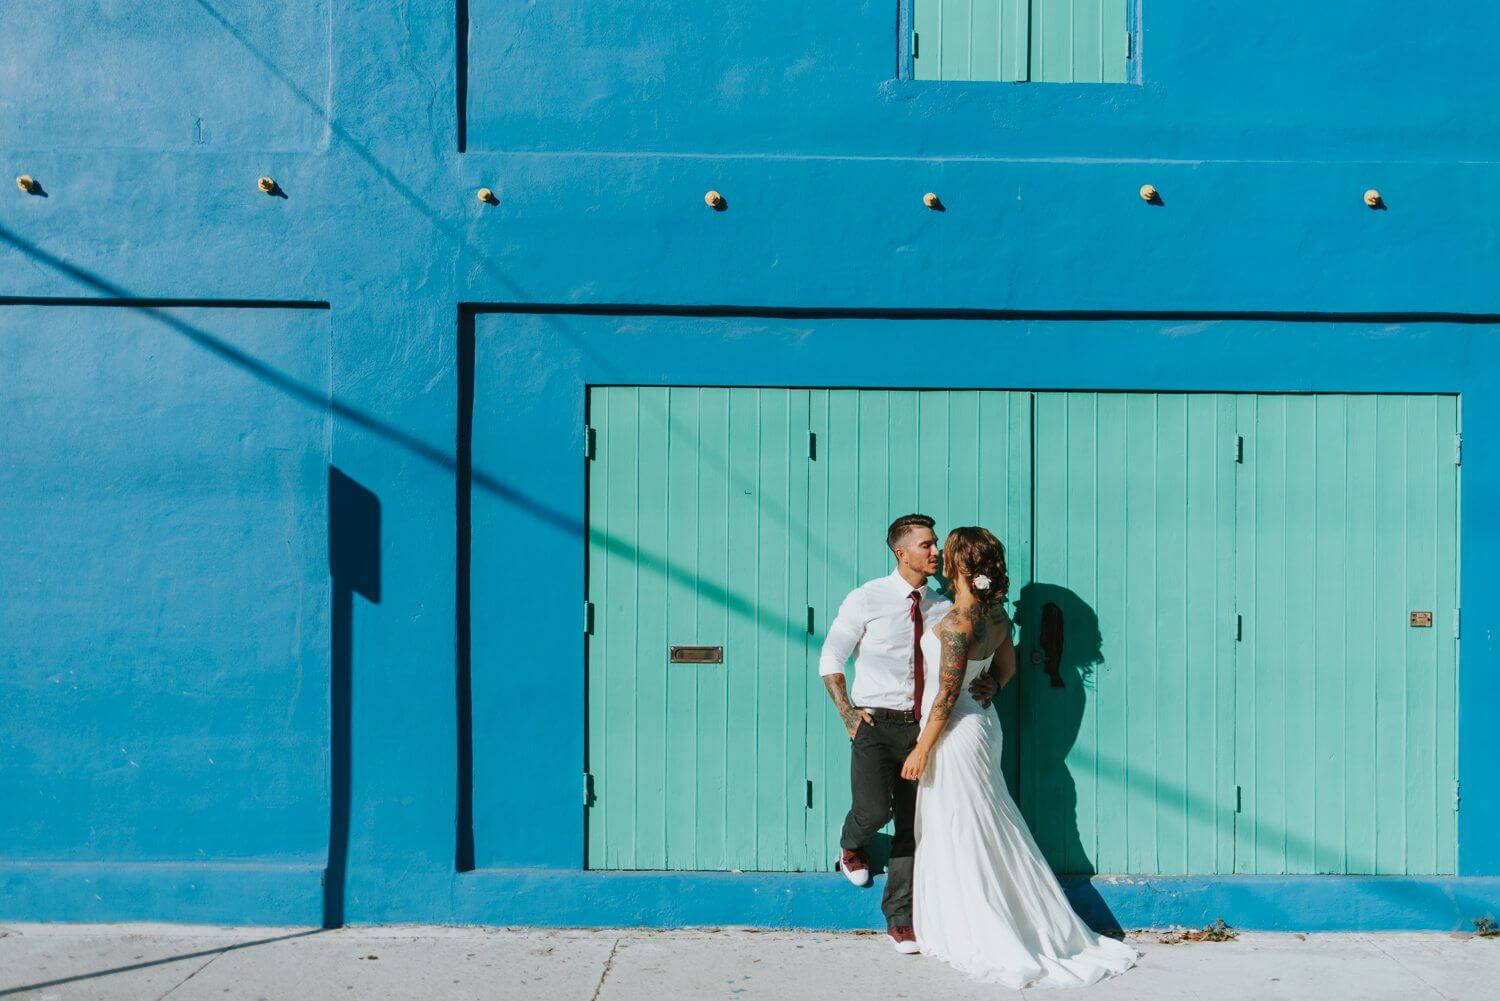 Fort Zachary Taylor Elopement KJ 18 - Key West Elopement - Fort Zachary Taylor - Key West Wedding Photographer